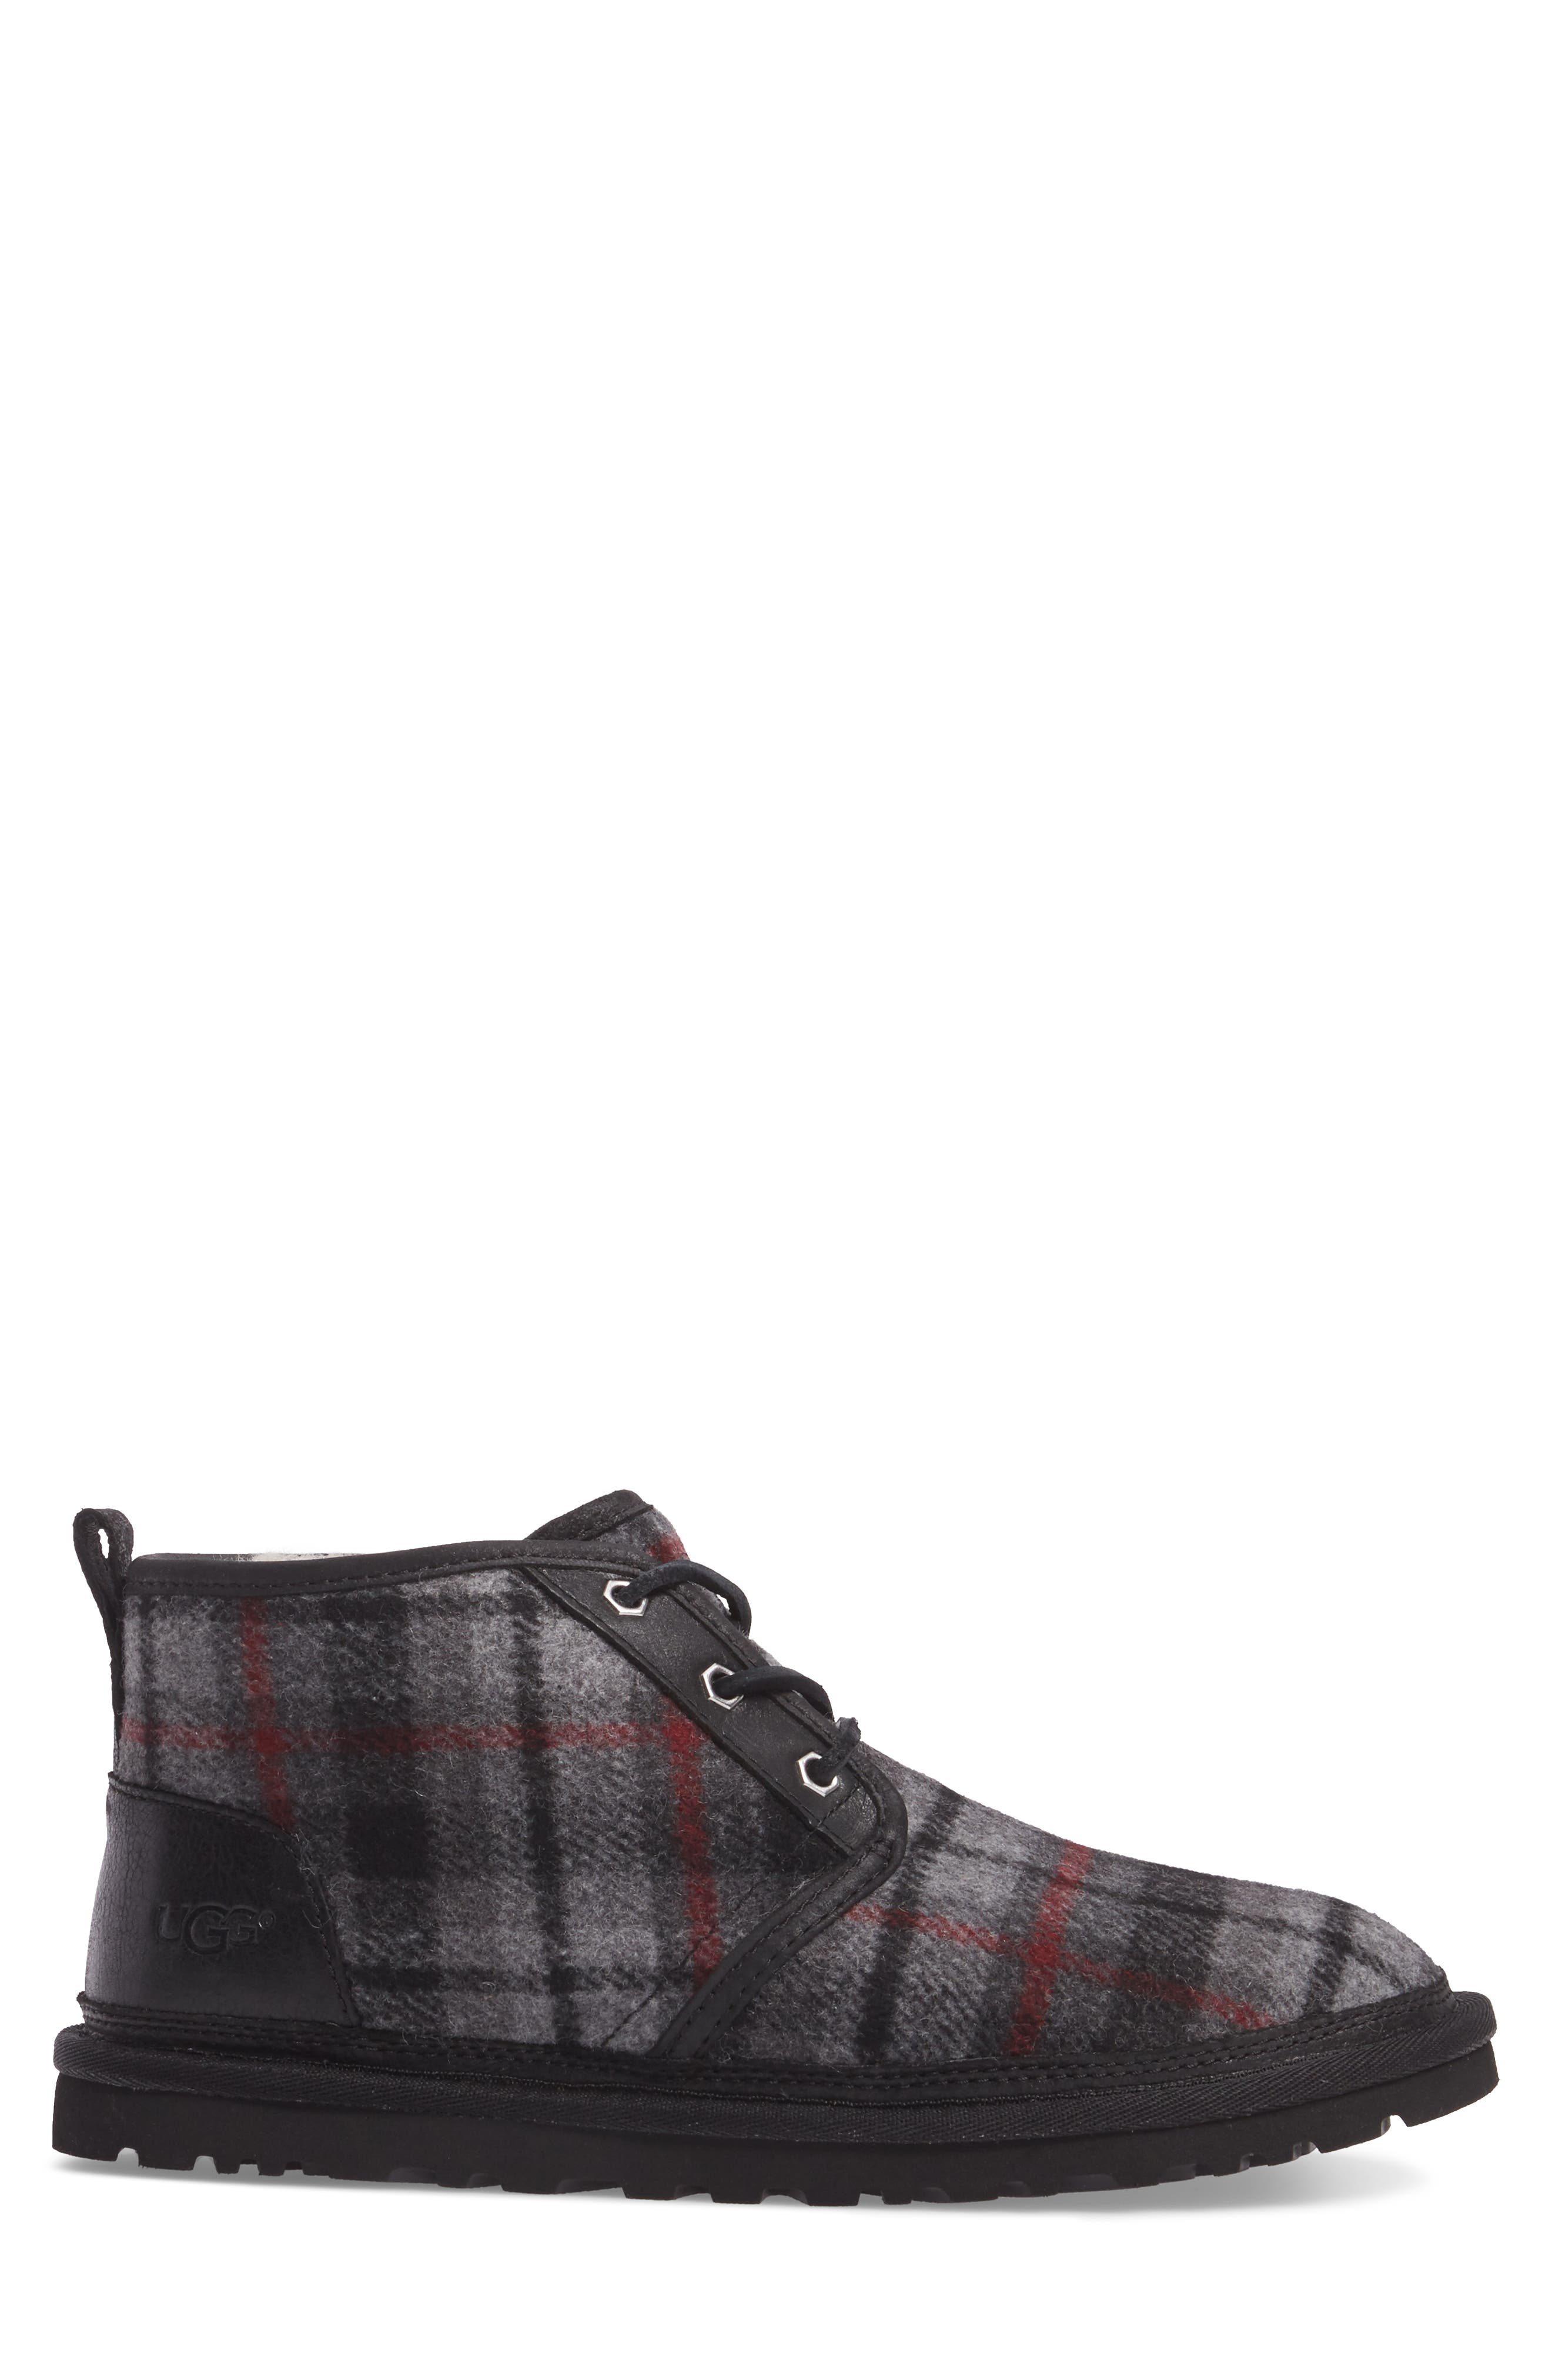 Neumel Chukka Boot,                             Alternate thumbnail 3, color,                             Tartan Plaid